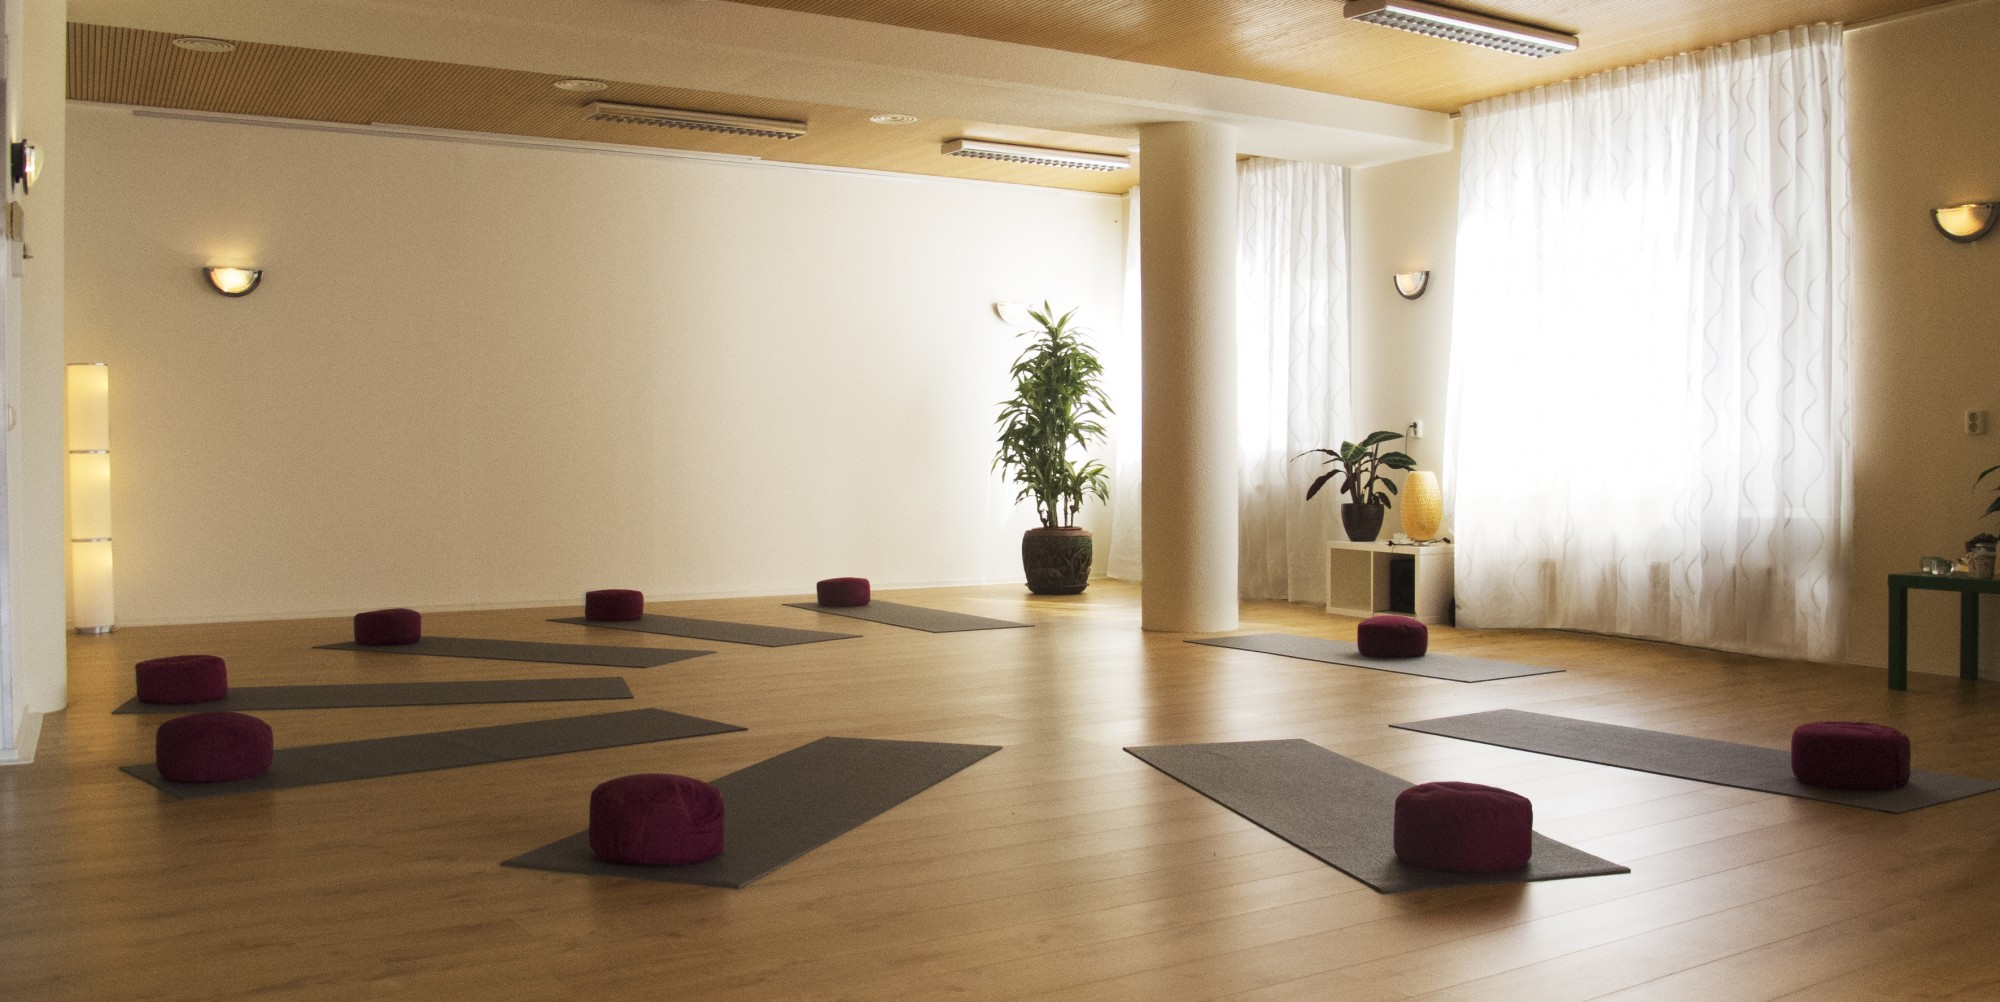 Yoga & Mindfulness Centrum Harmonie in jezelf